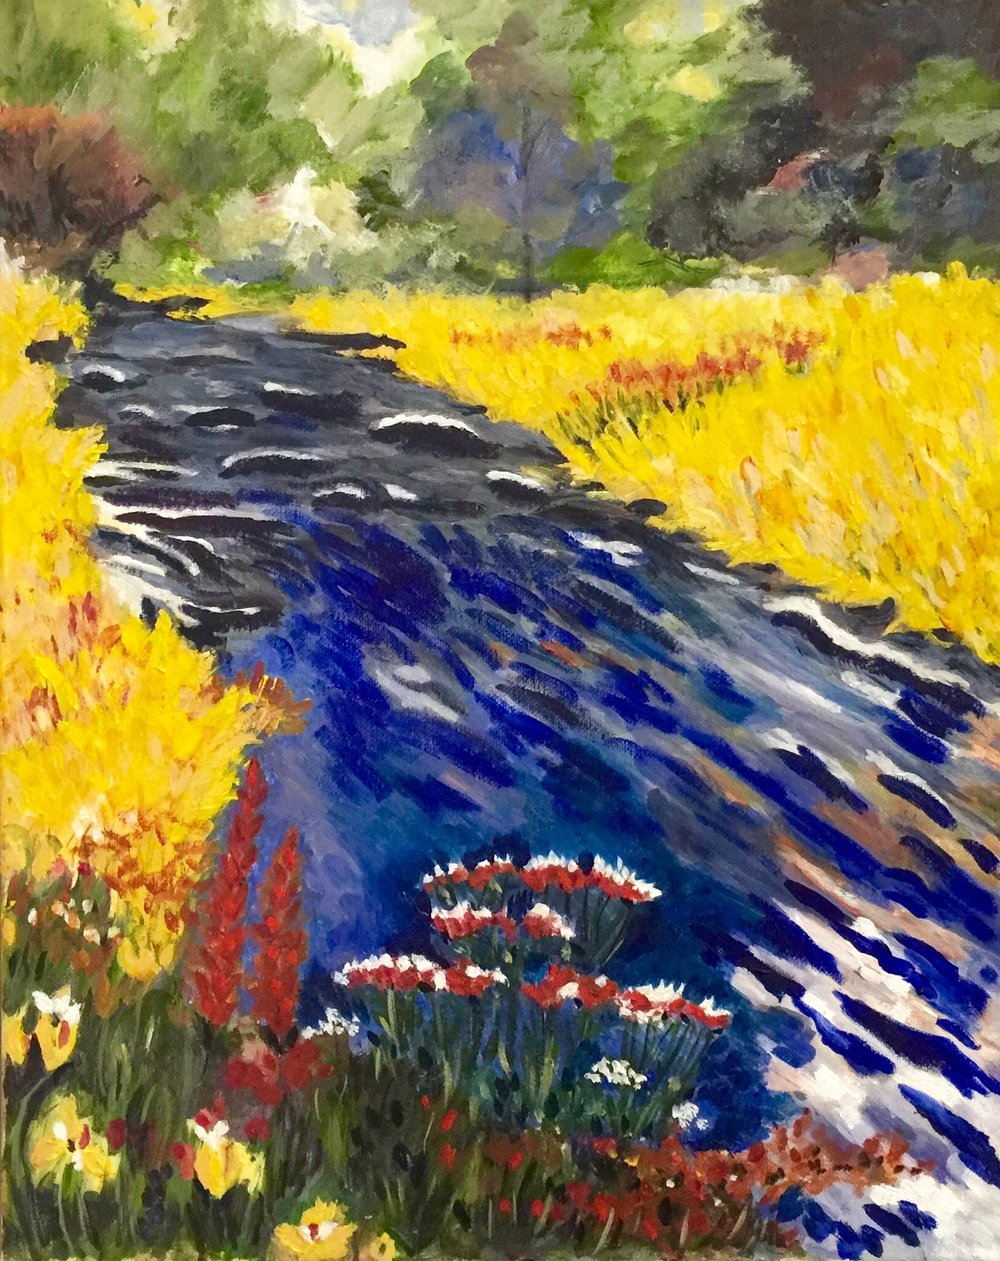 """River of Life"" - Oil, 16""x 20"" - 2014 (Following ""Landscapes in Oils"" by Noel Gregory. Search Press)"